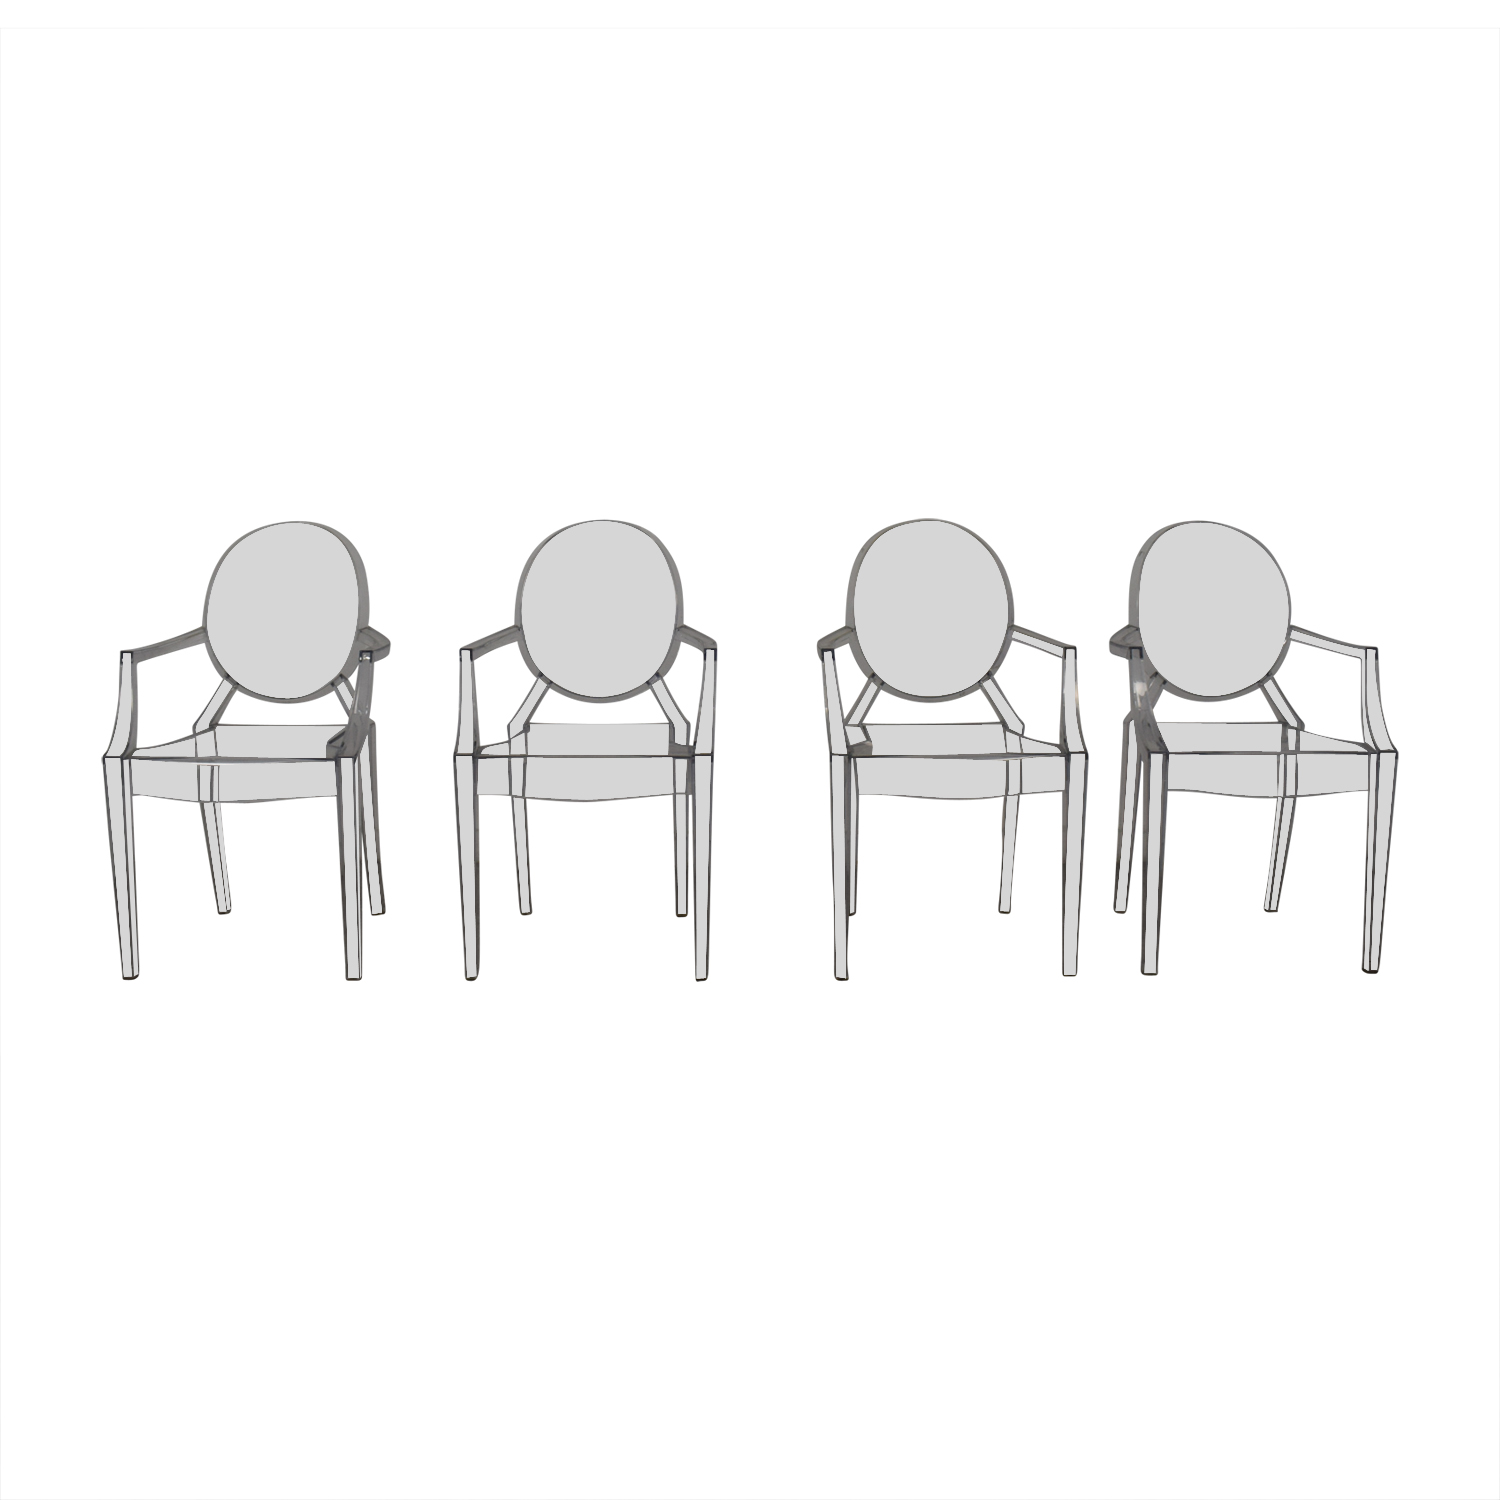 Poly & Bark Poly & Bark Ghost Style Acrylic Arm Chair dimensions